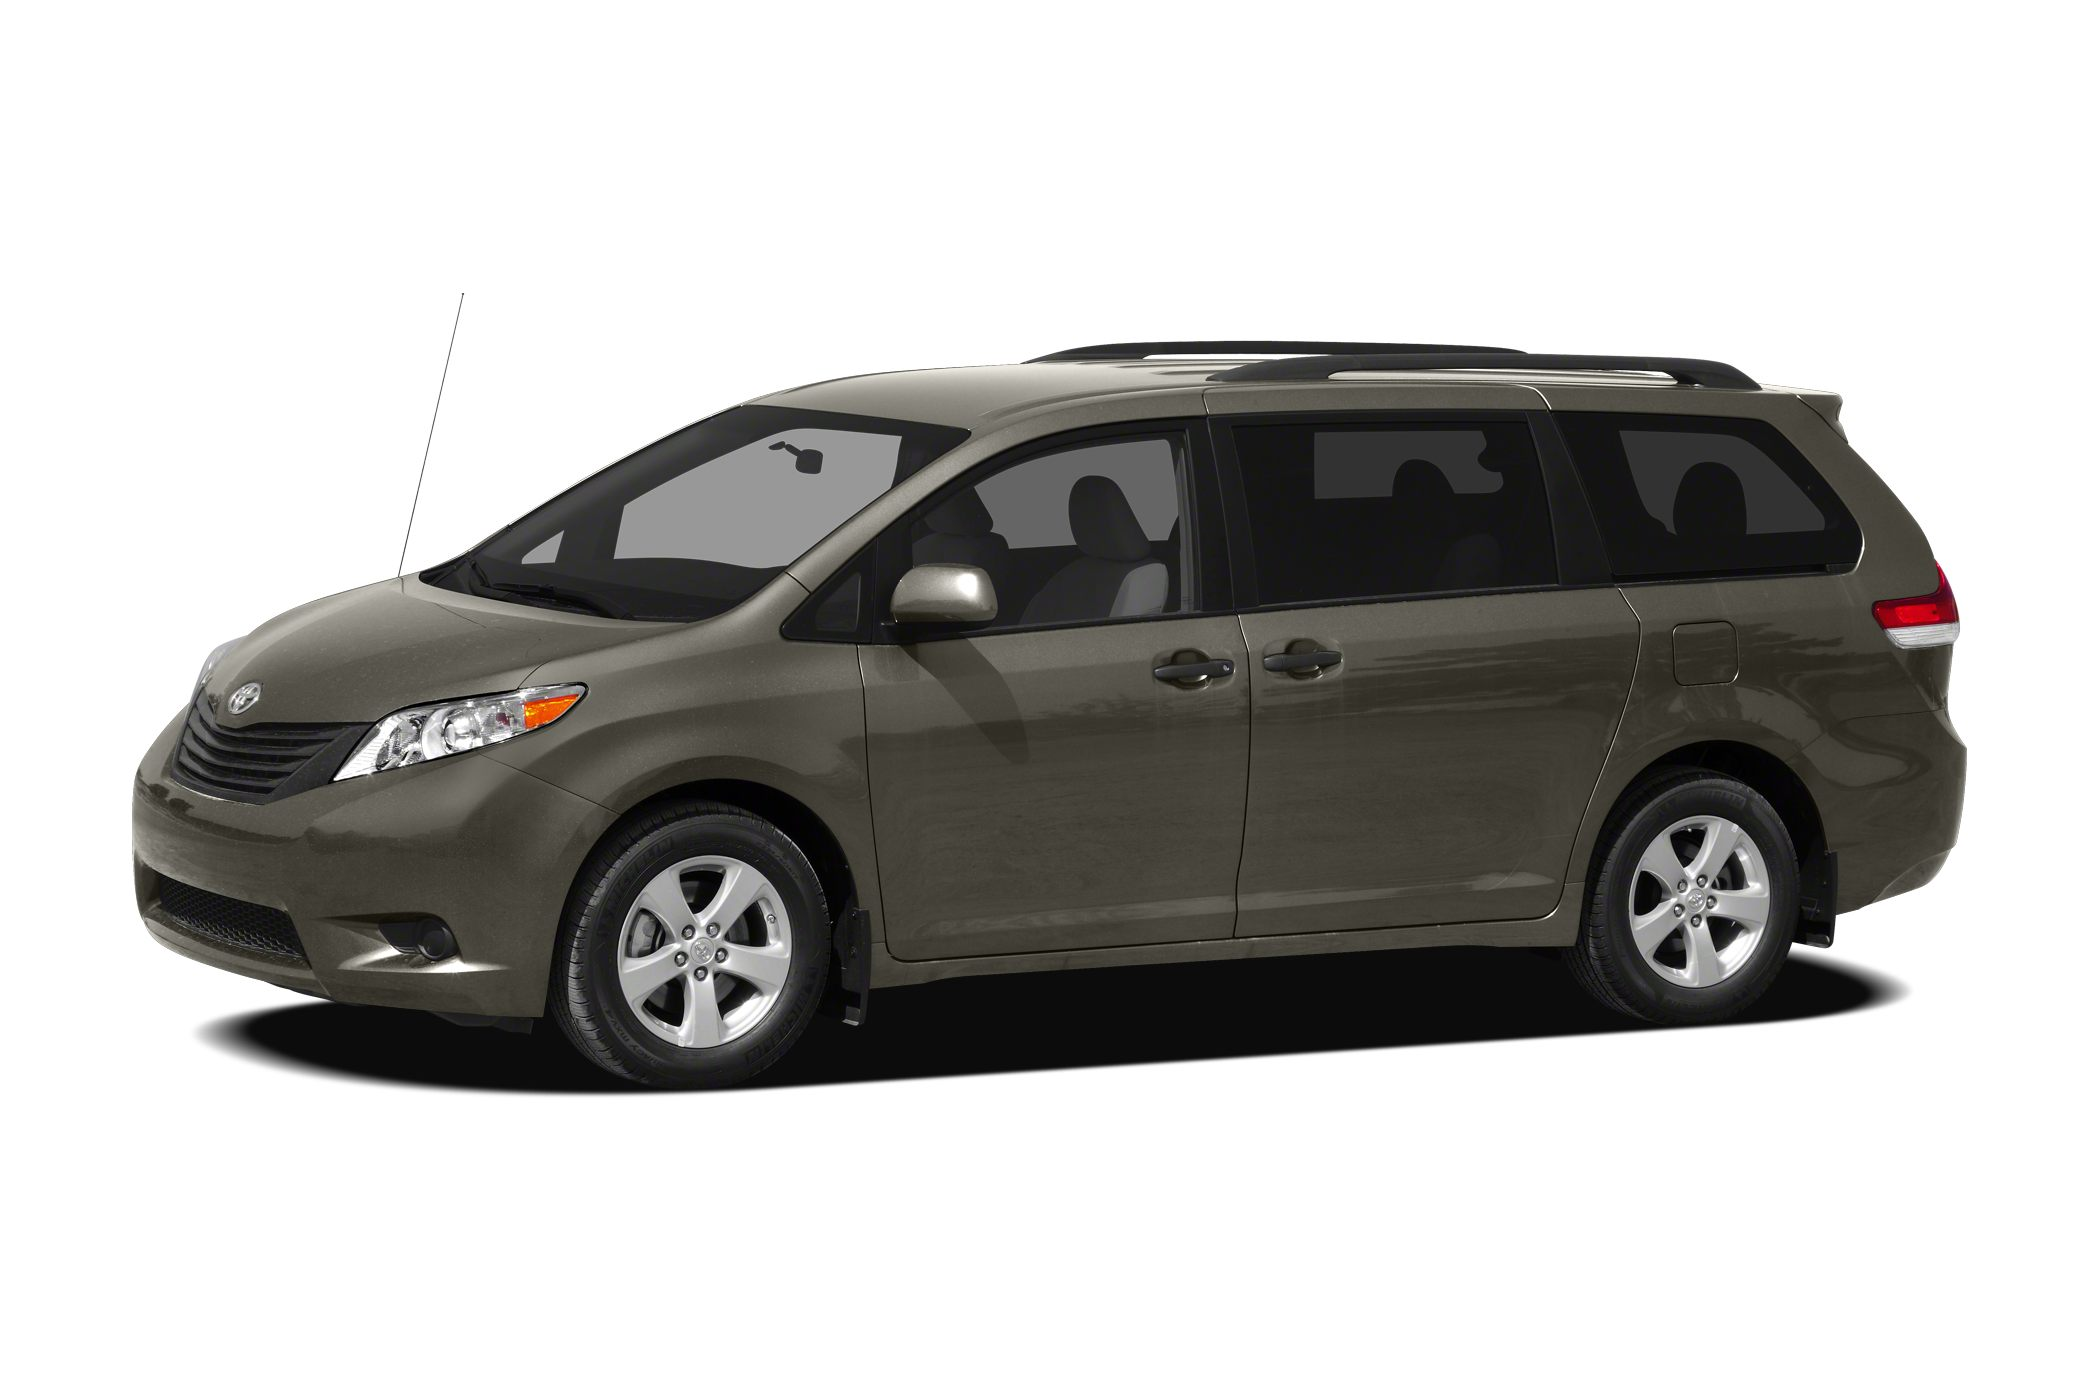 2012 Toyota Sienna XLE Minivan for sale in Selinsgrove for $28,988 with 35,562 miles.